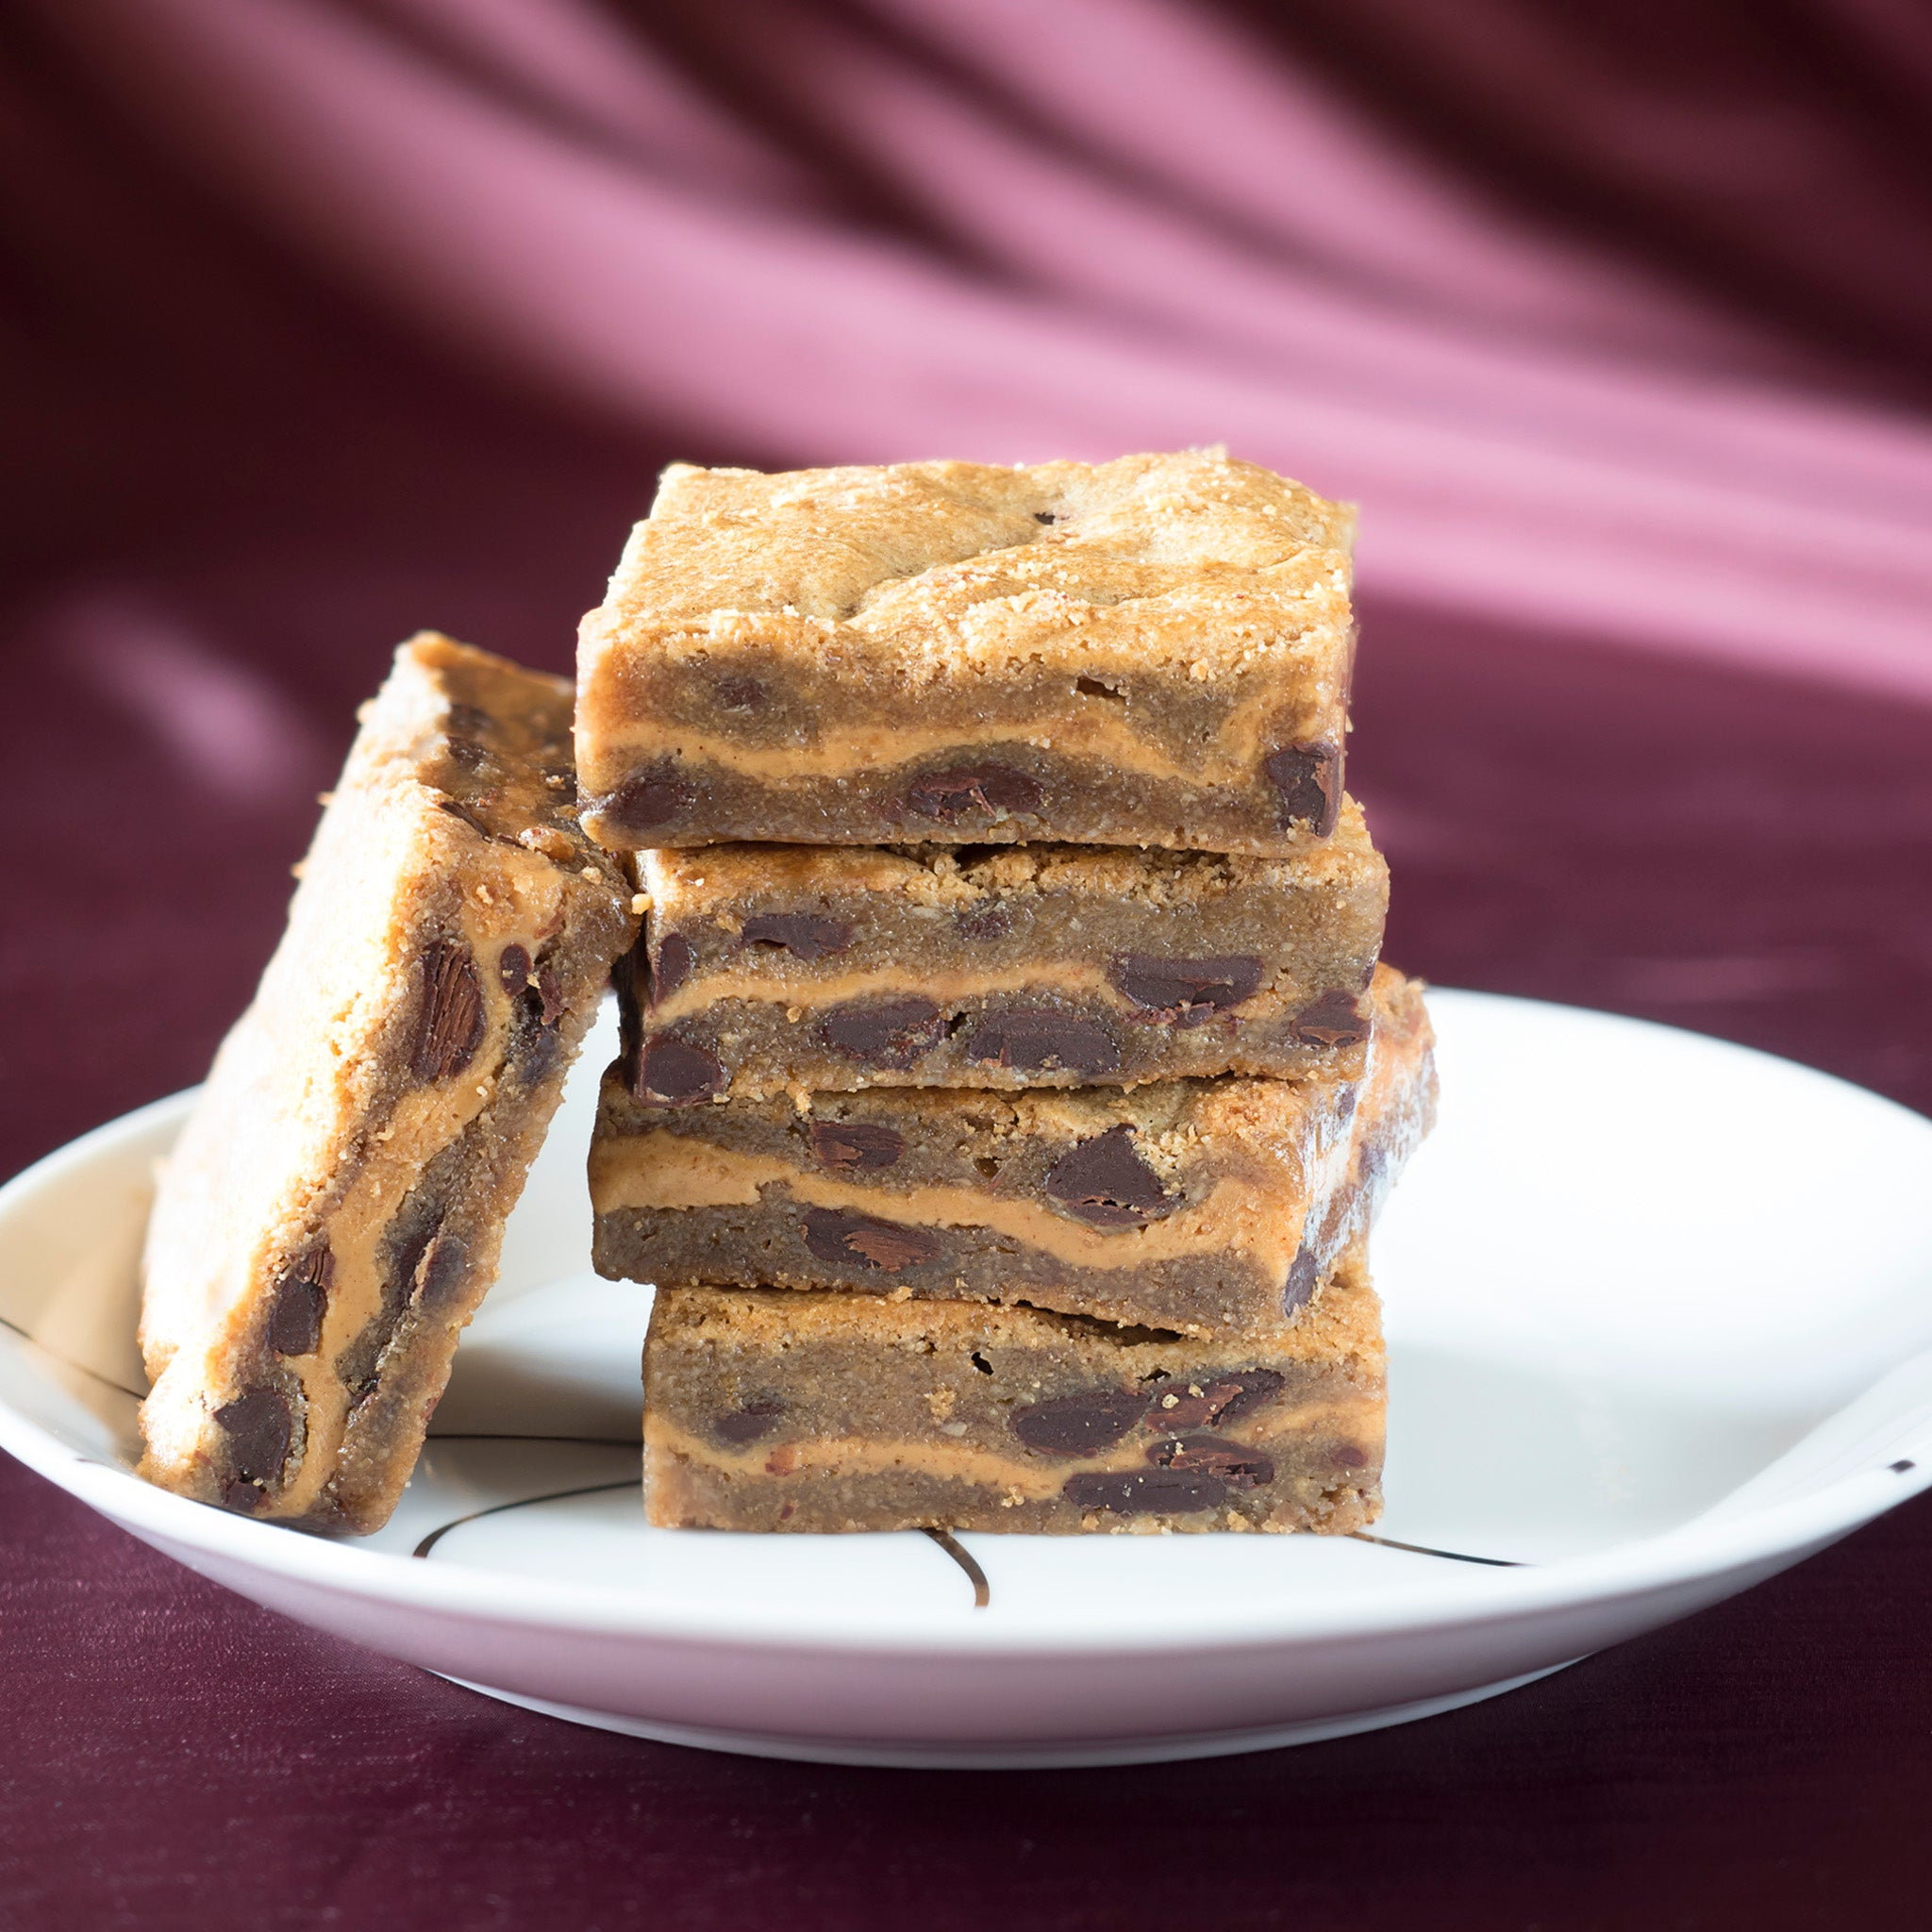 Gluten Free Chocolate Peanut Butter Blondie